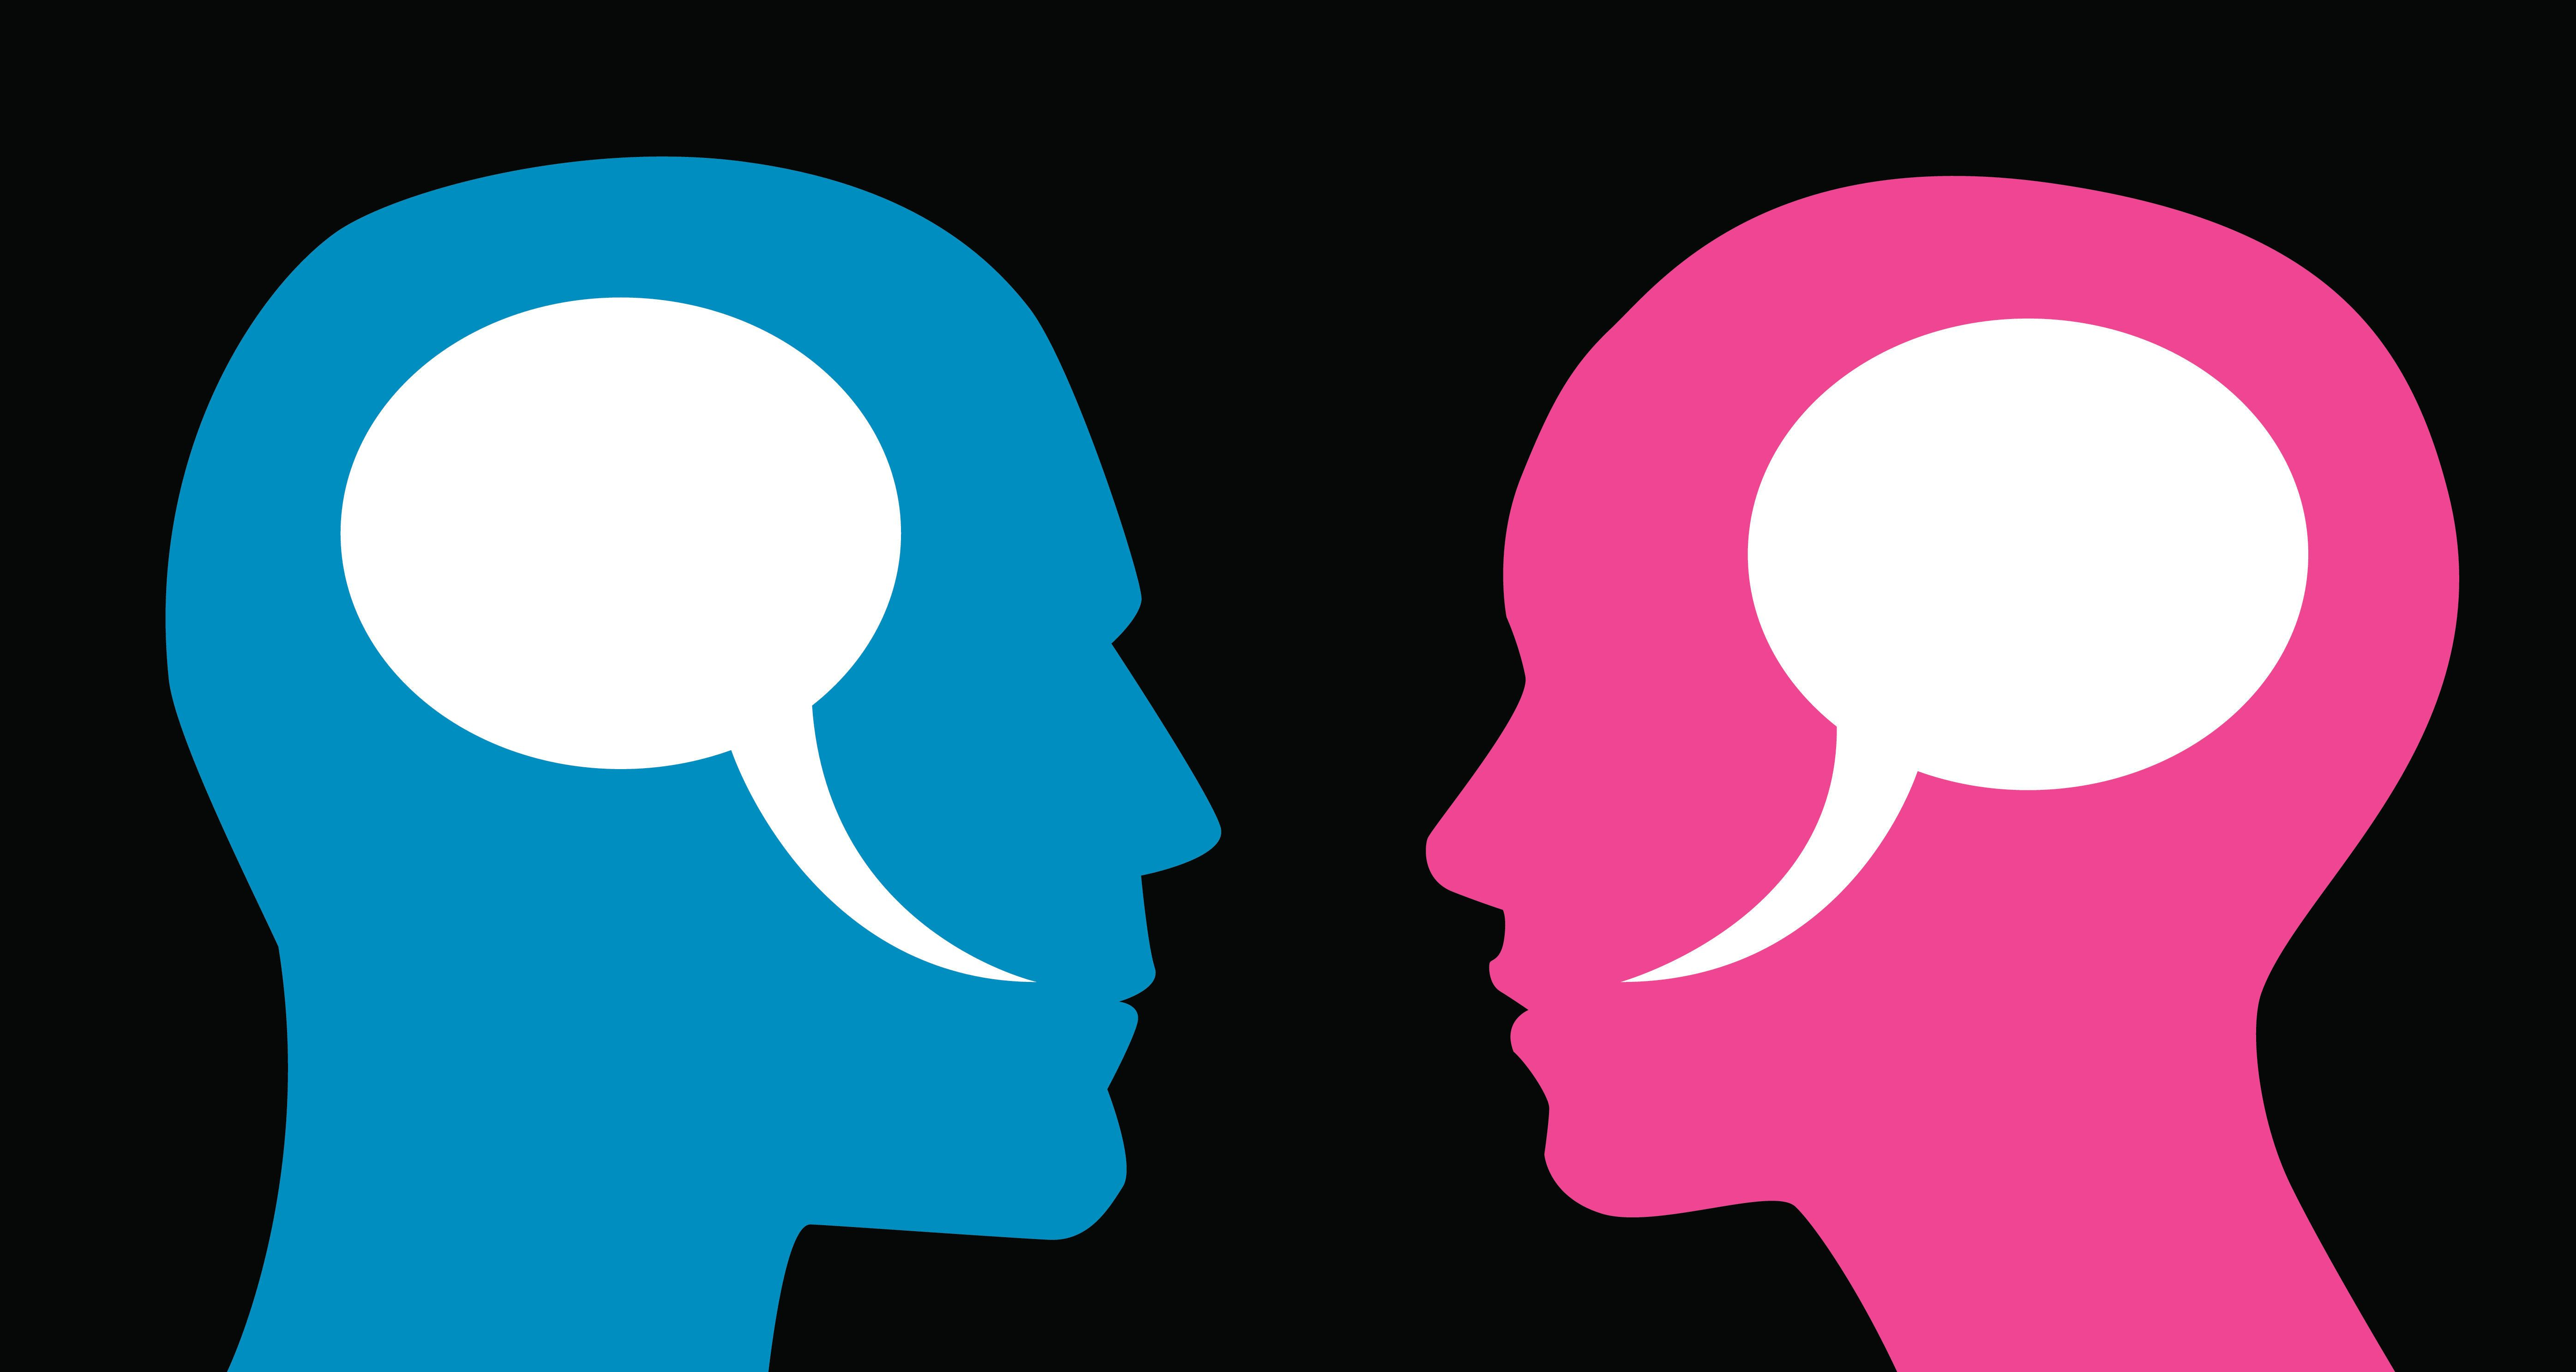 Vector illustration of two profiles of a man and woman with speech bubbles inside their heads.